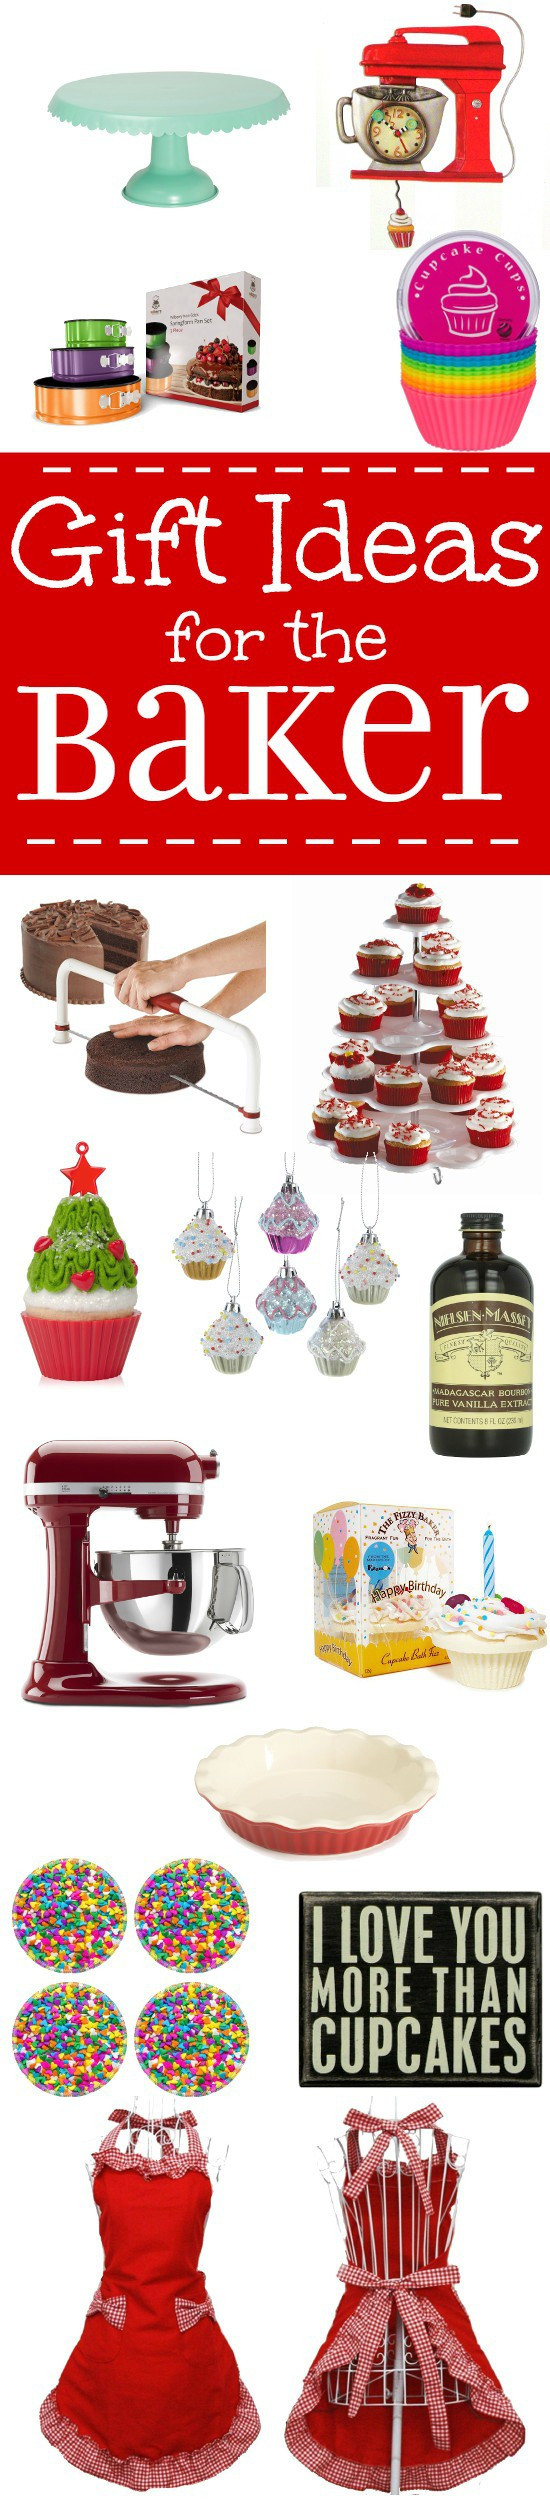 Best ideas about Baker Gift Ideas . Save or Pin Gift Ideas for the Baker Now.